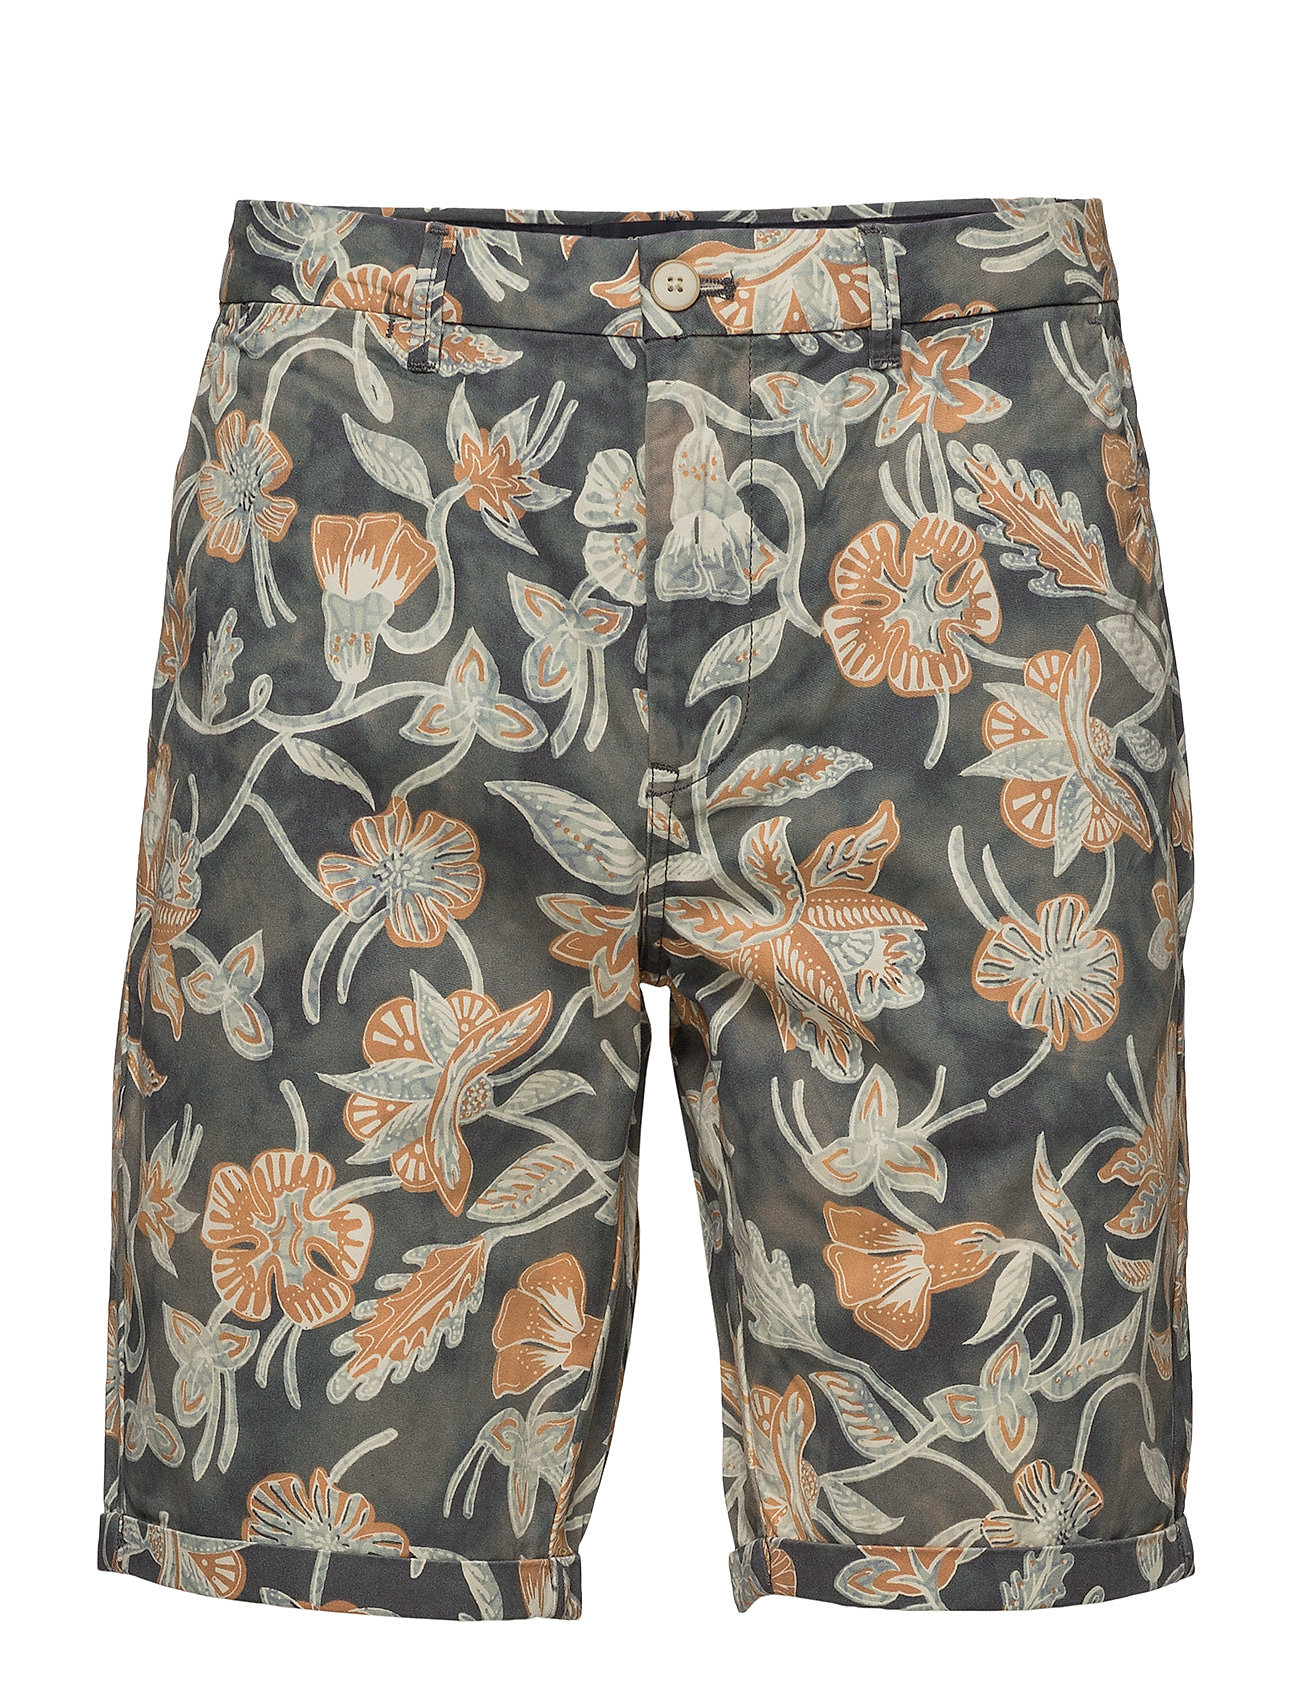 Scotch & Soda Summer beach short Shorts